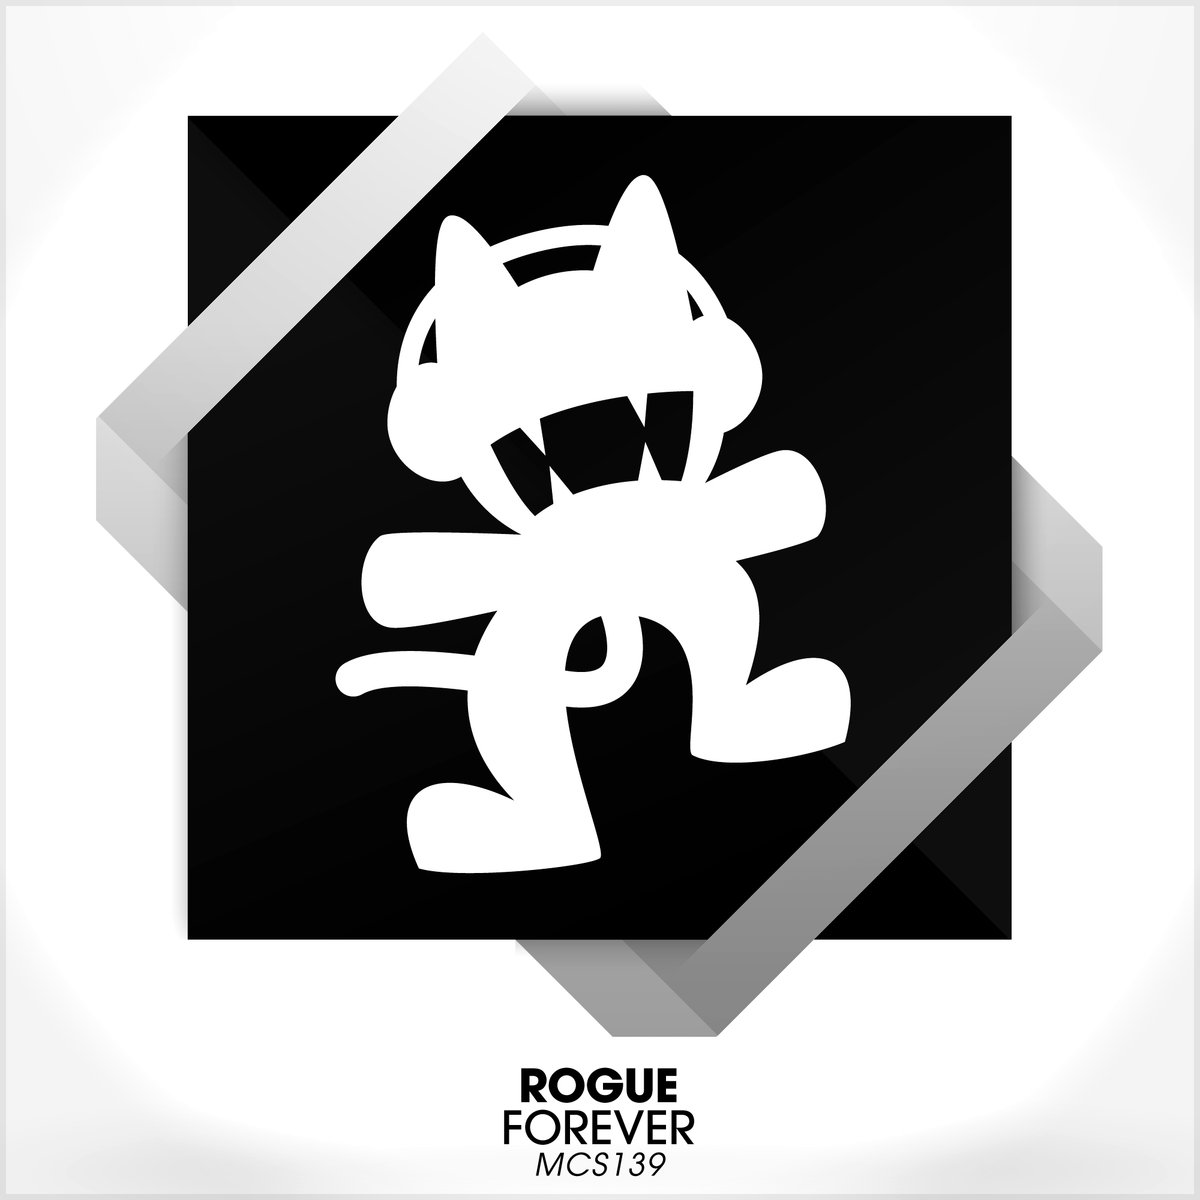 Forever (Rogue)